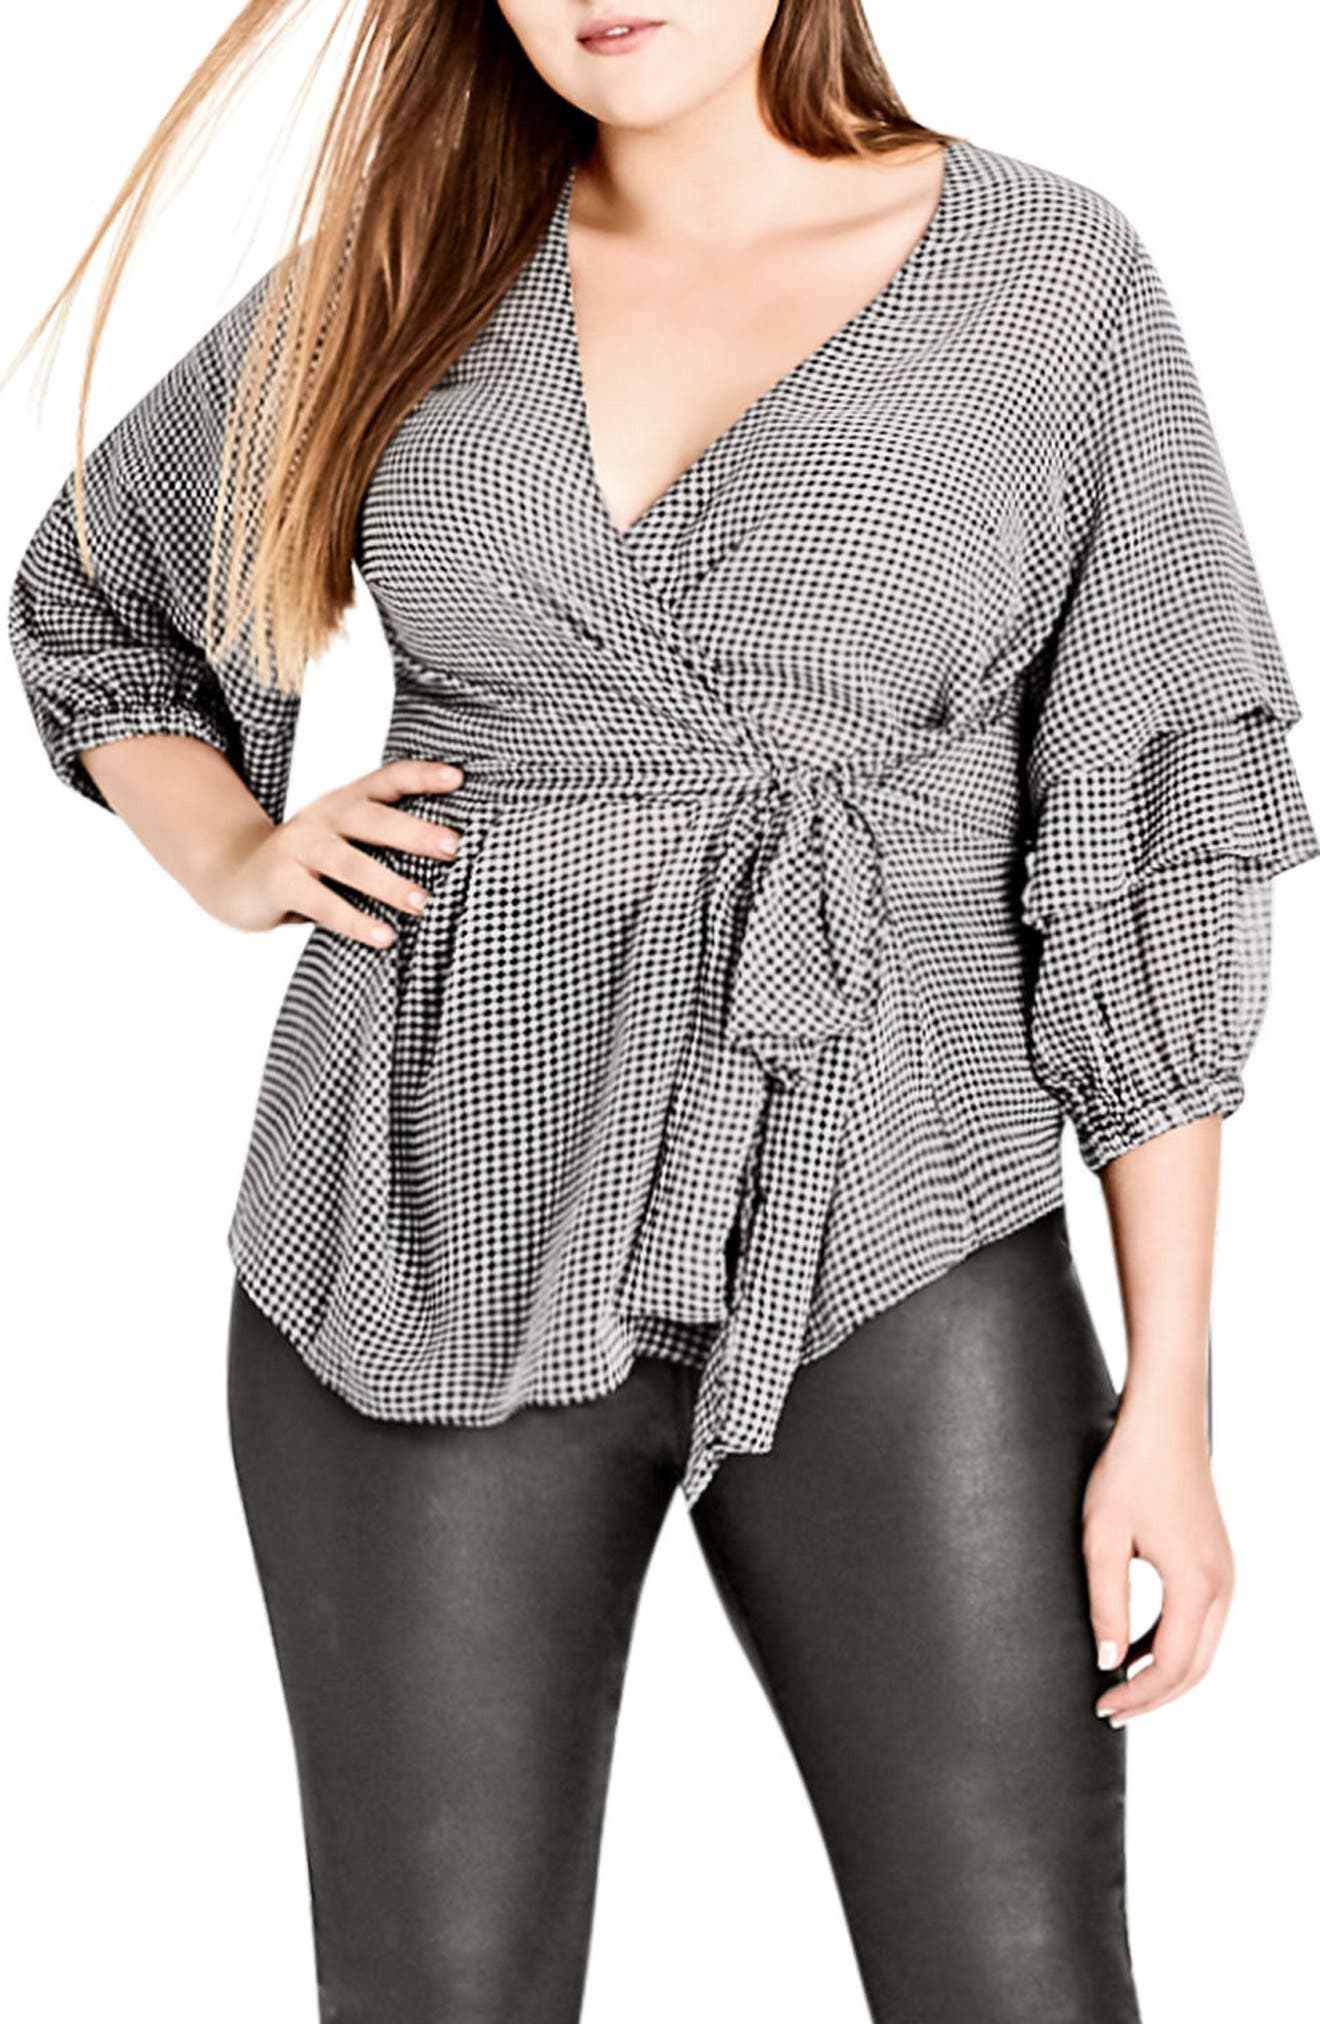 My Desire Check Print Wrap Top,                             Main thumbnail 1, color,                             Gingham